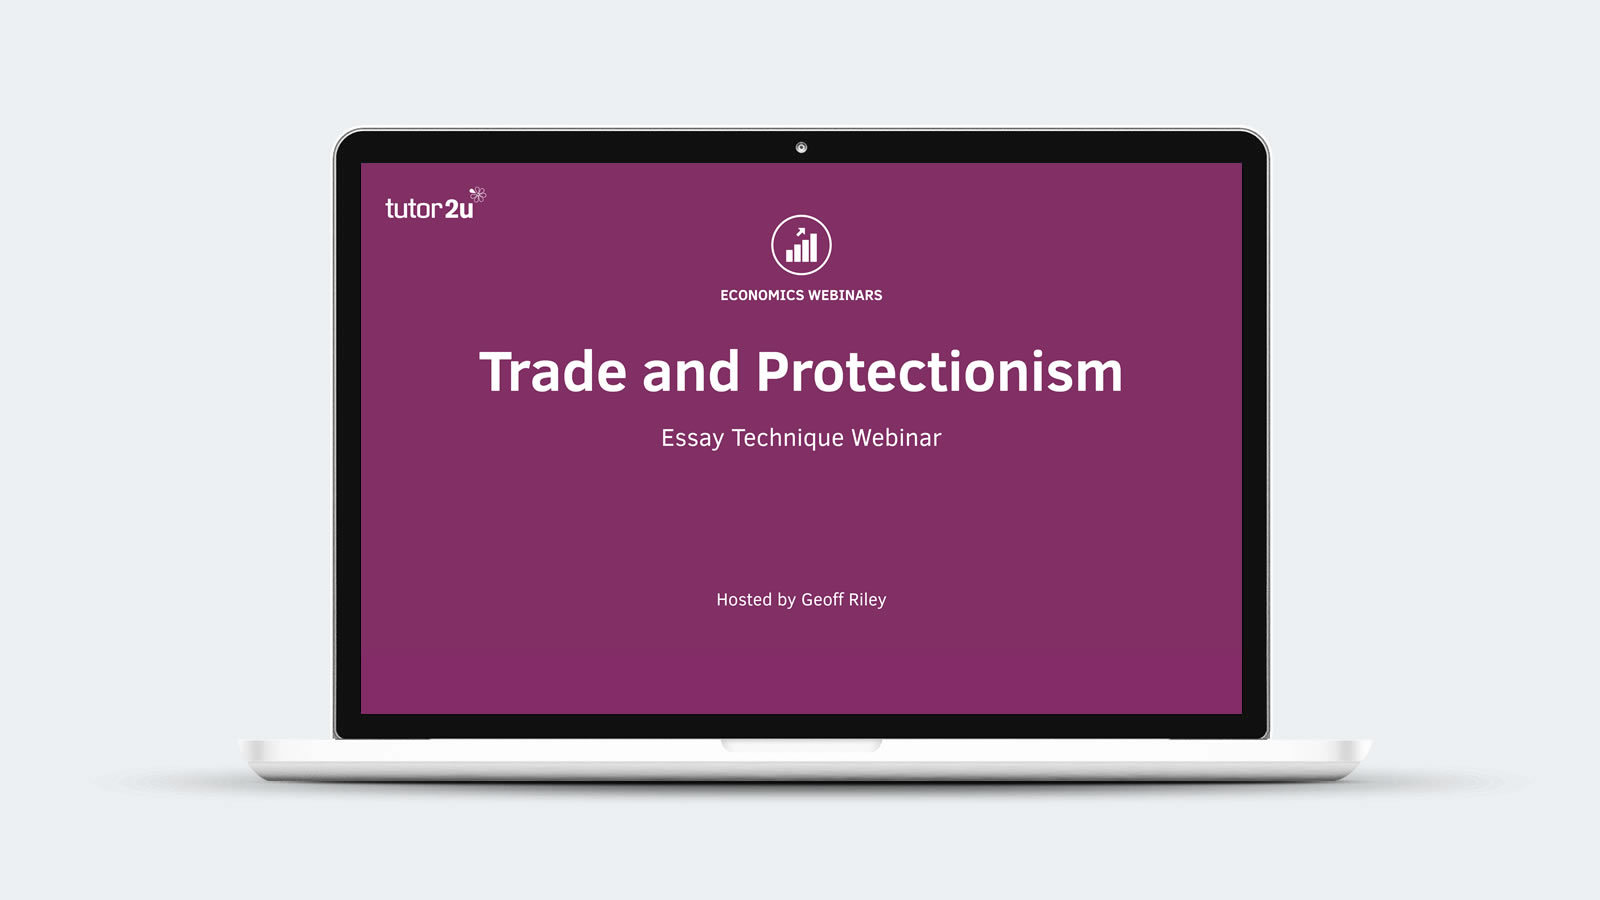 explore economics essential economics essay technique webinar trade and protectionism